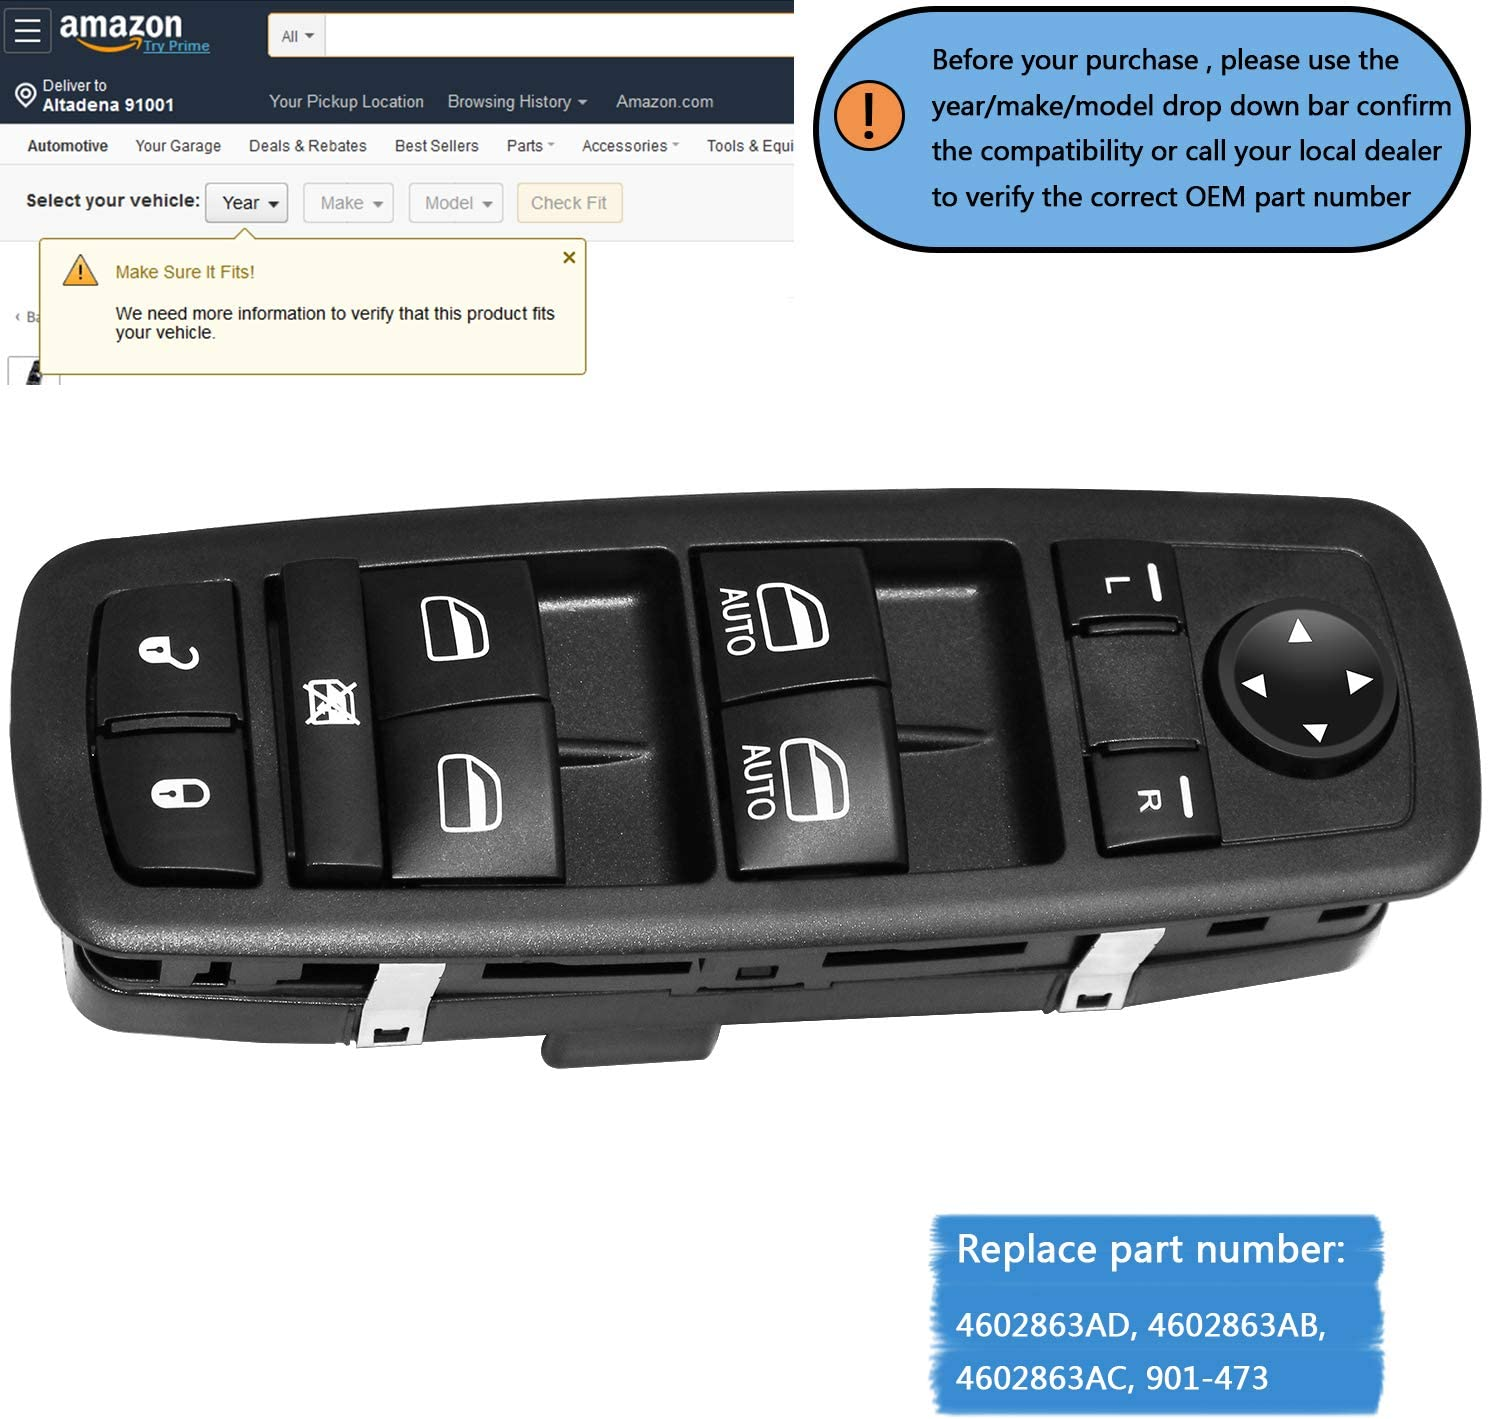 TTIHOT Ram Window Switch Front Driver Side Power Master Window Switch Compatible for 2009-2012 Dodge Ram 1500 2500 3500 Replace # 4602863AD 4602863AB 4602863AC Driver Side Master Power Window Switch